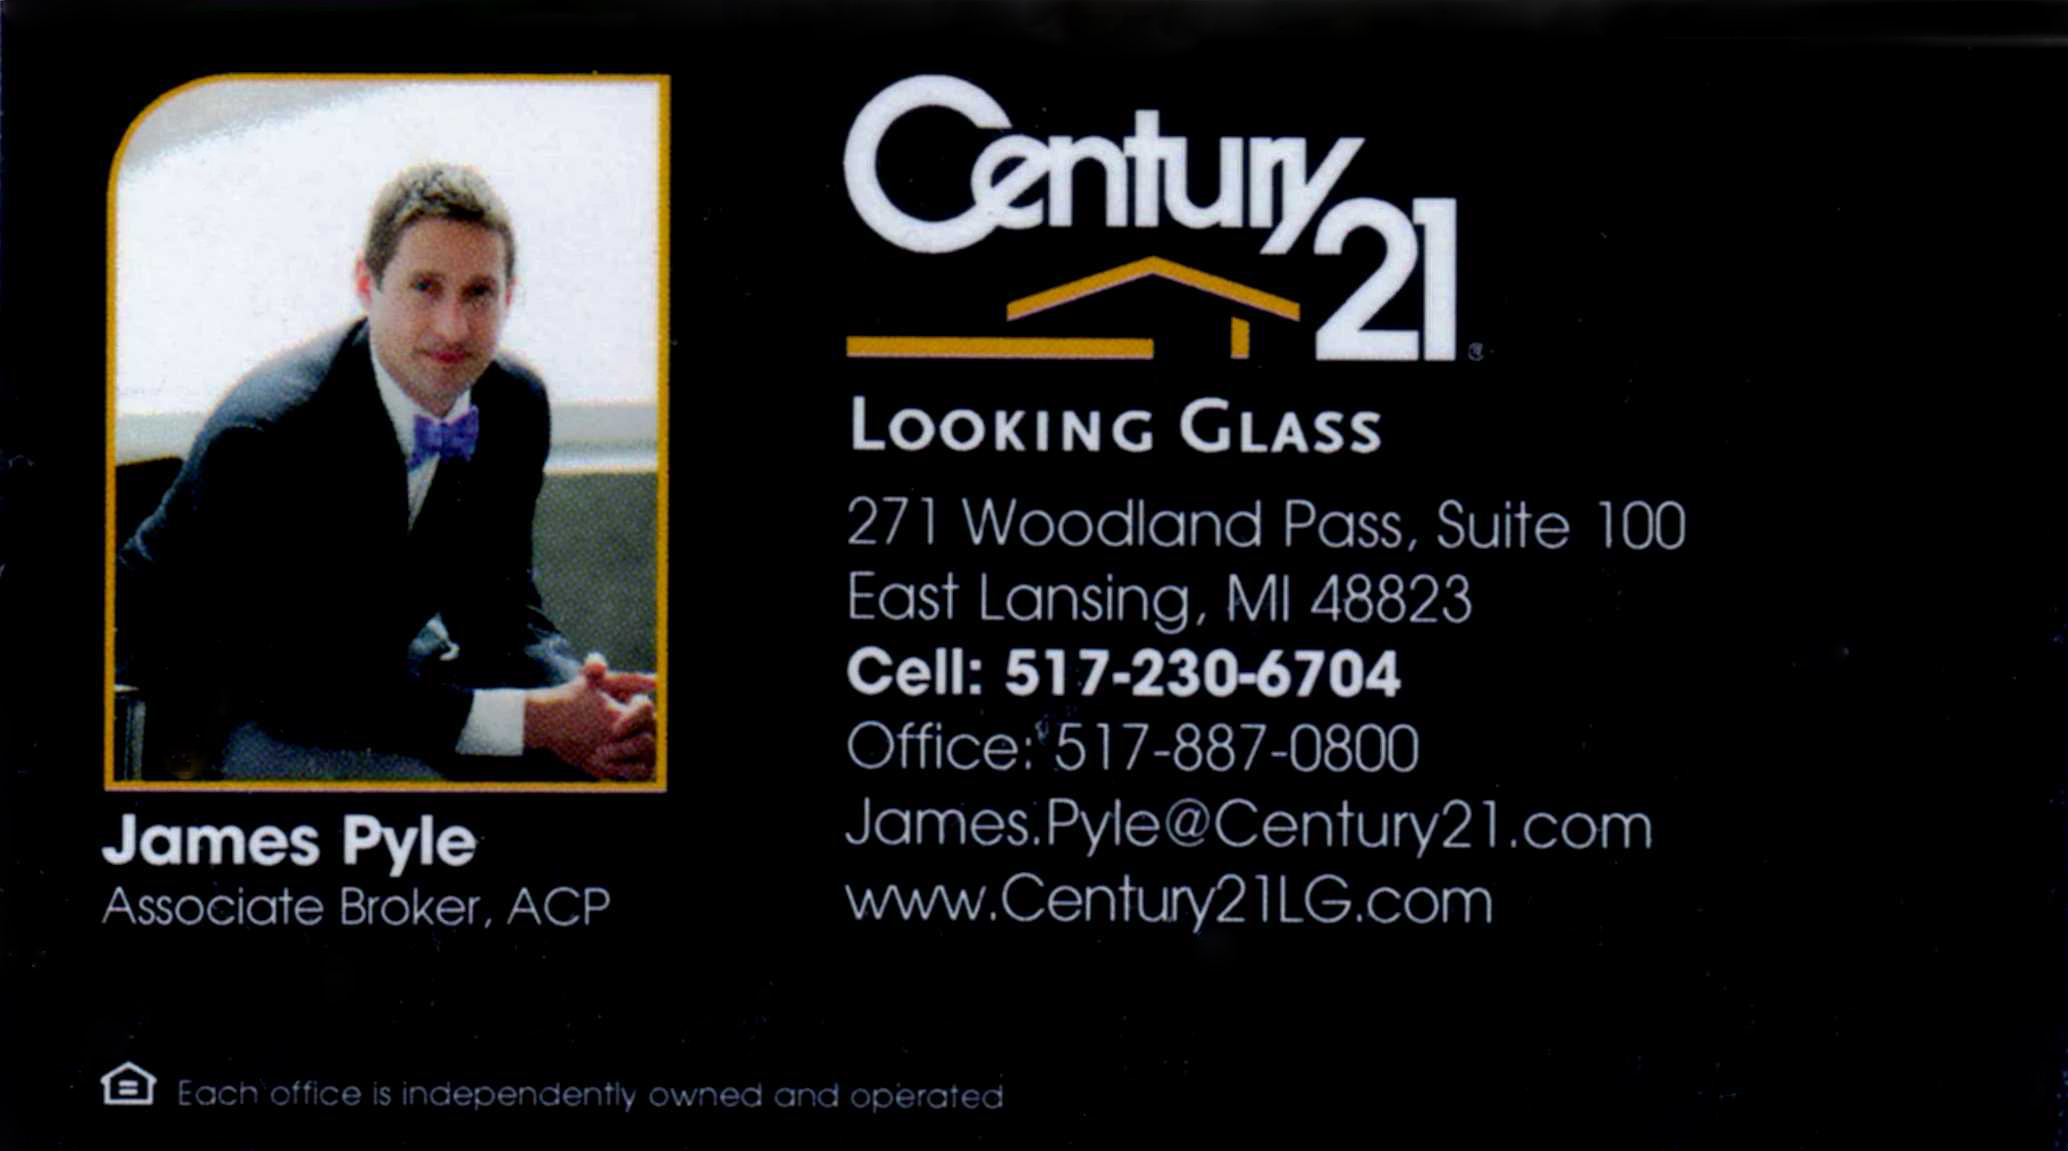 Century 21 / Looking Glass - James Pyle